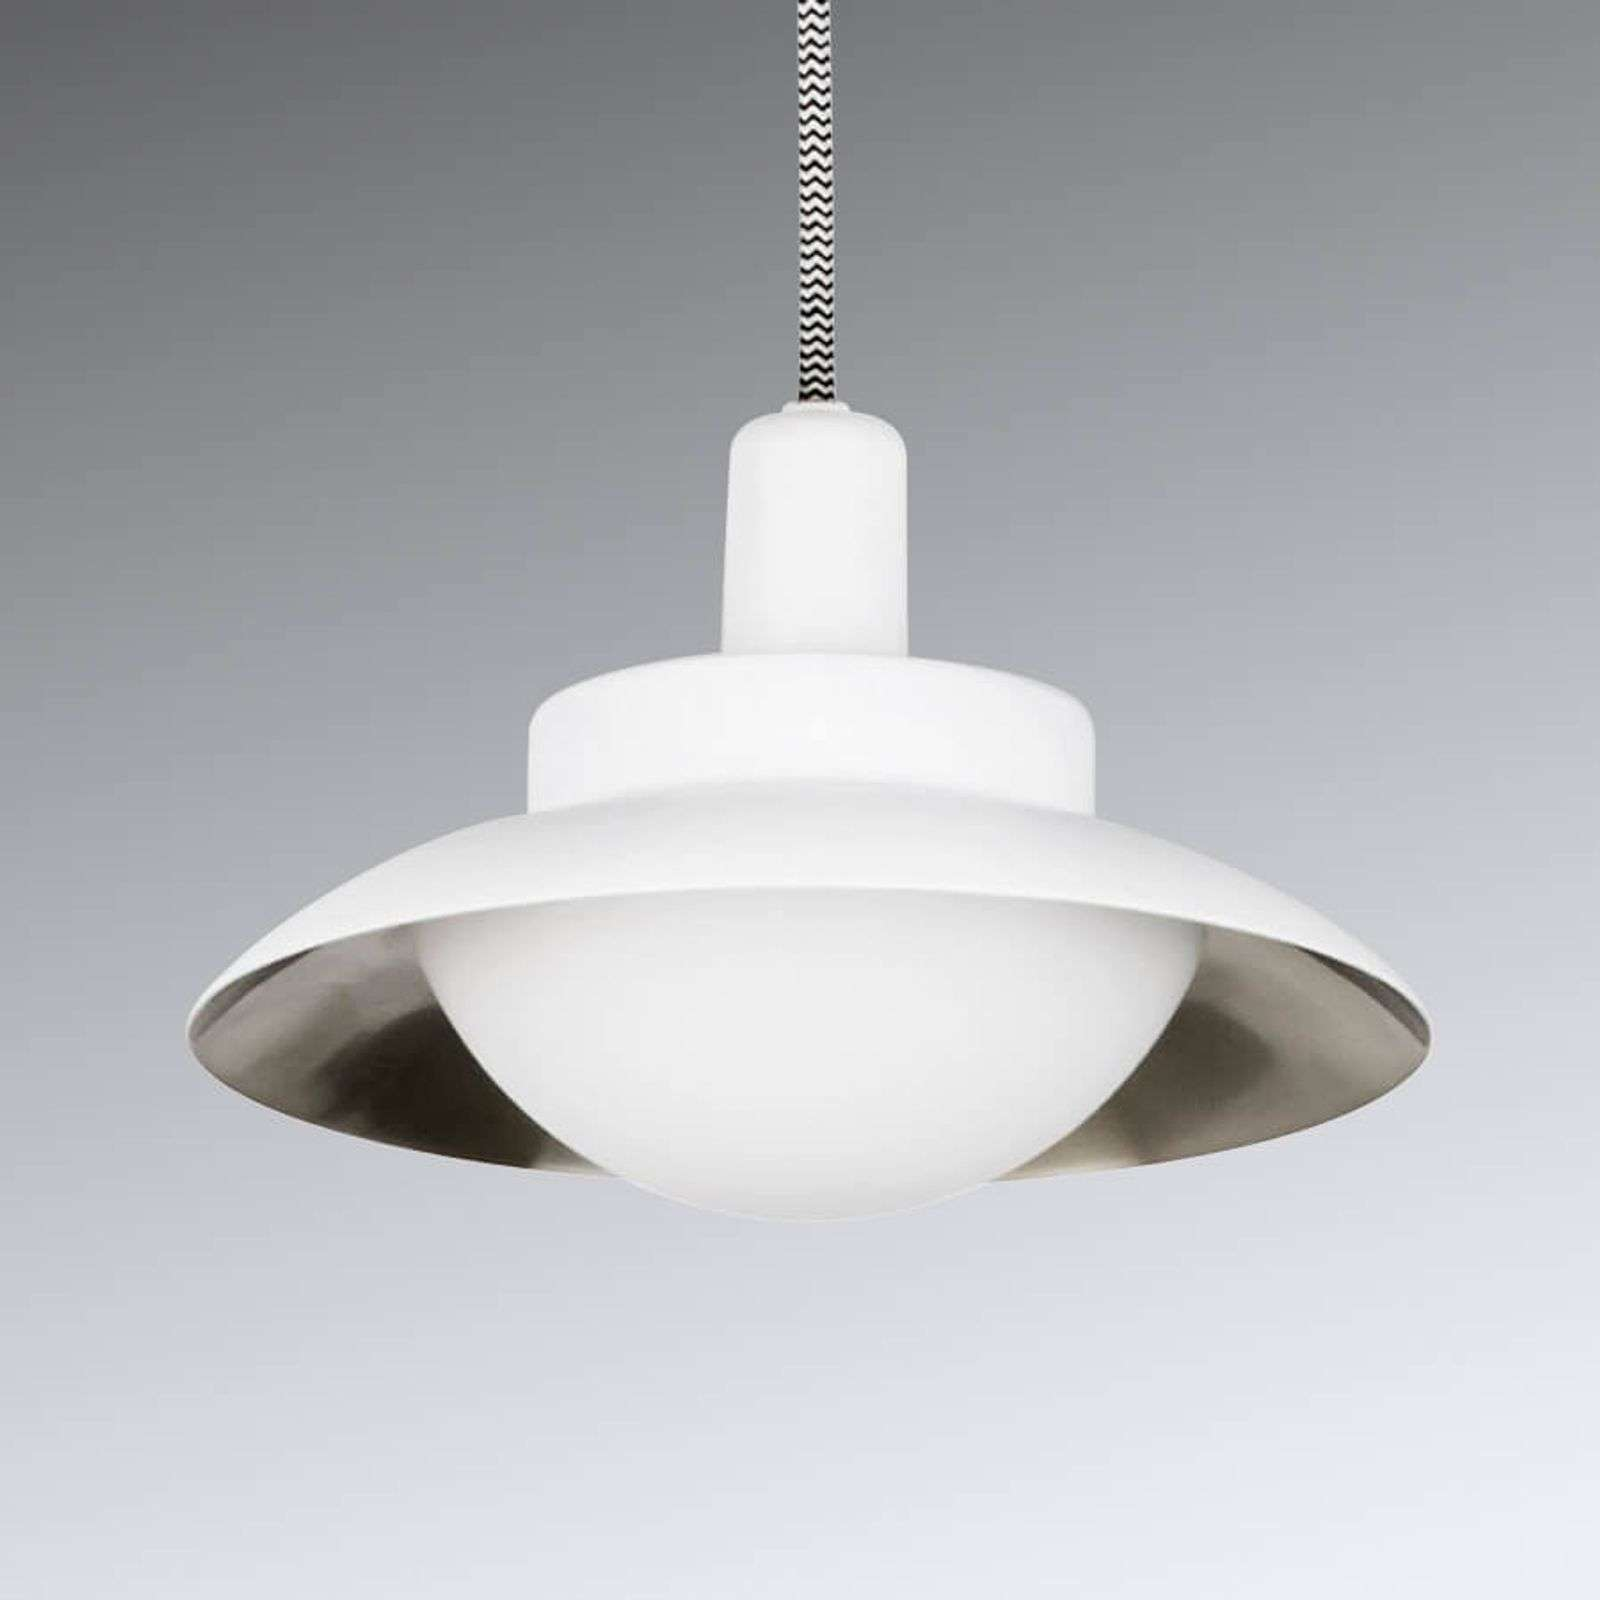 Suspension LED Side, blanc et nickel mat